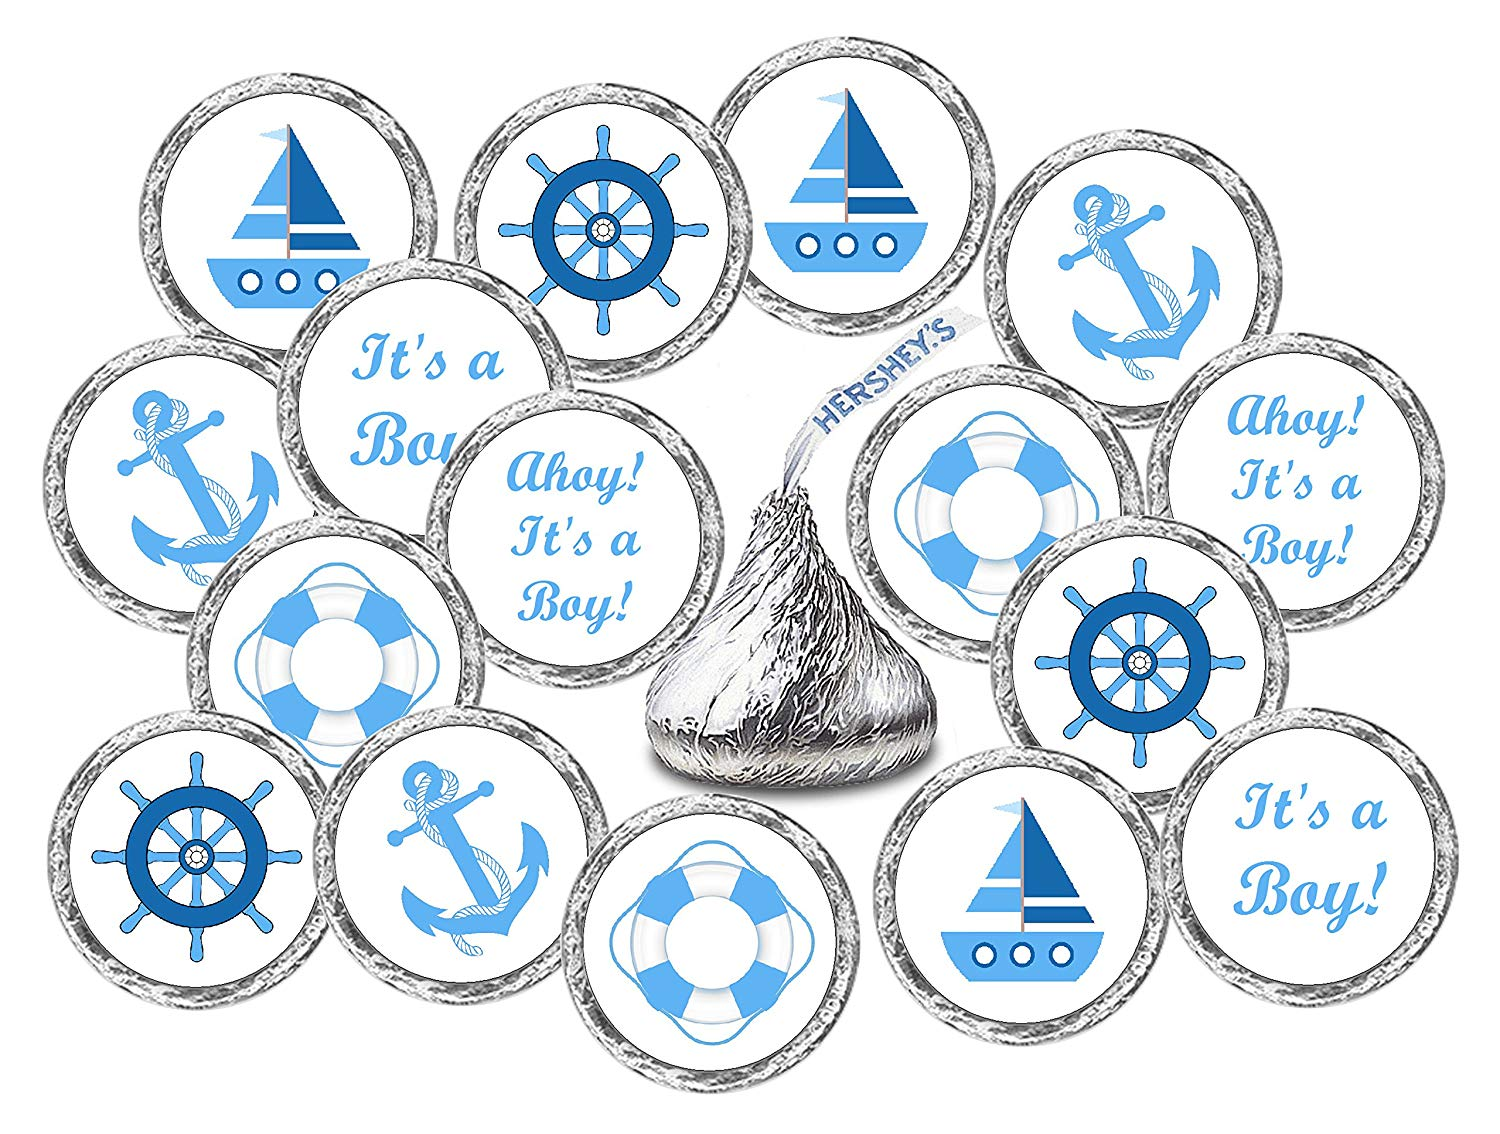 324 Nautical Blue Its a Boy Baby Shower Favors Stickers For Baby Shower Or Baby Sprinkle Party, Baby Shower Kisses Stickers, Baby Shower Blue Favors, Baby Shower Labels, Its a Boy Kisses